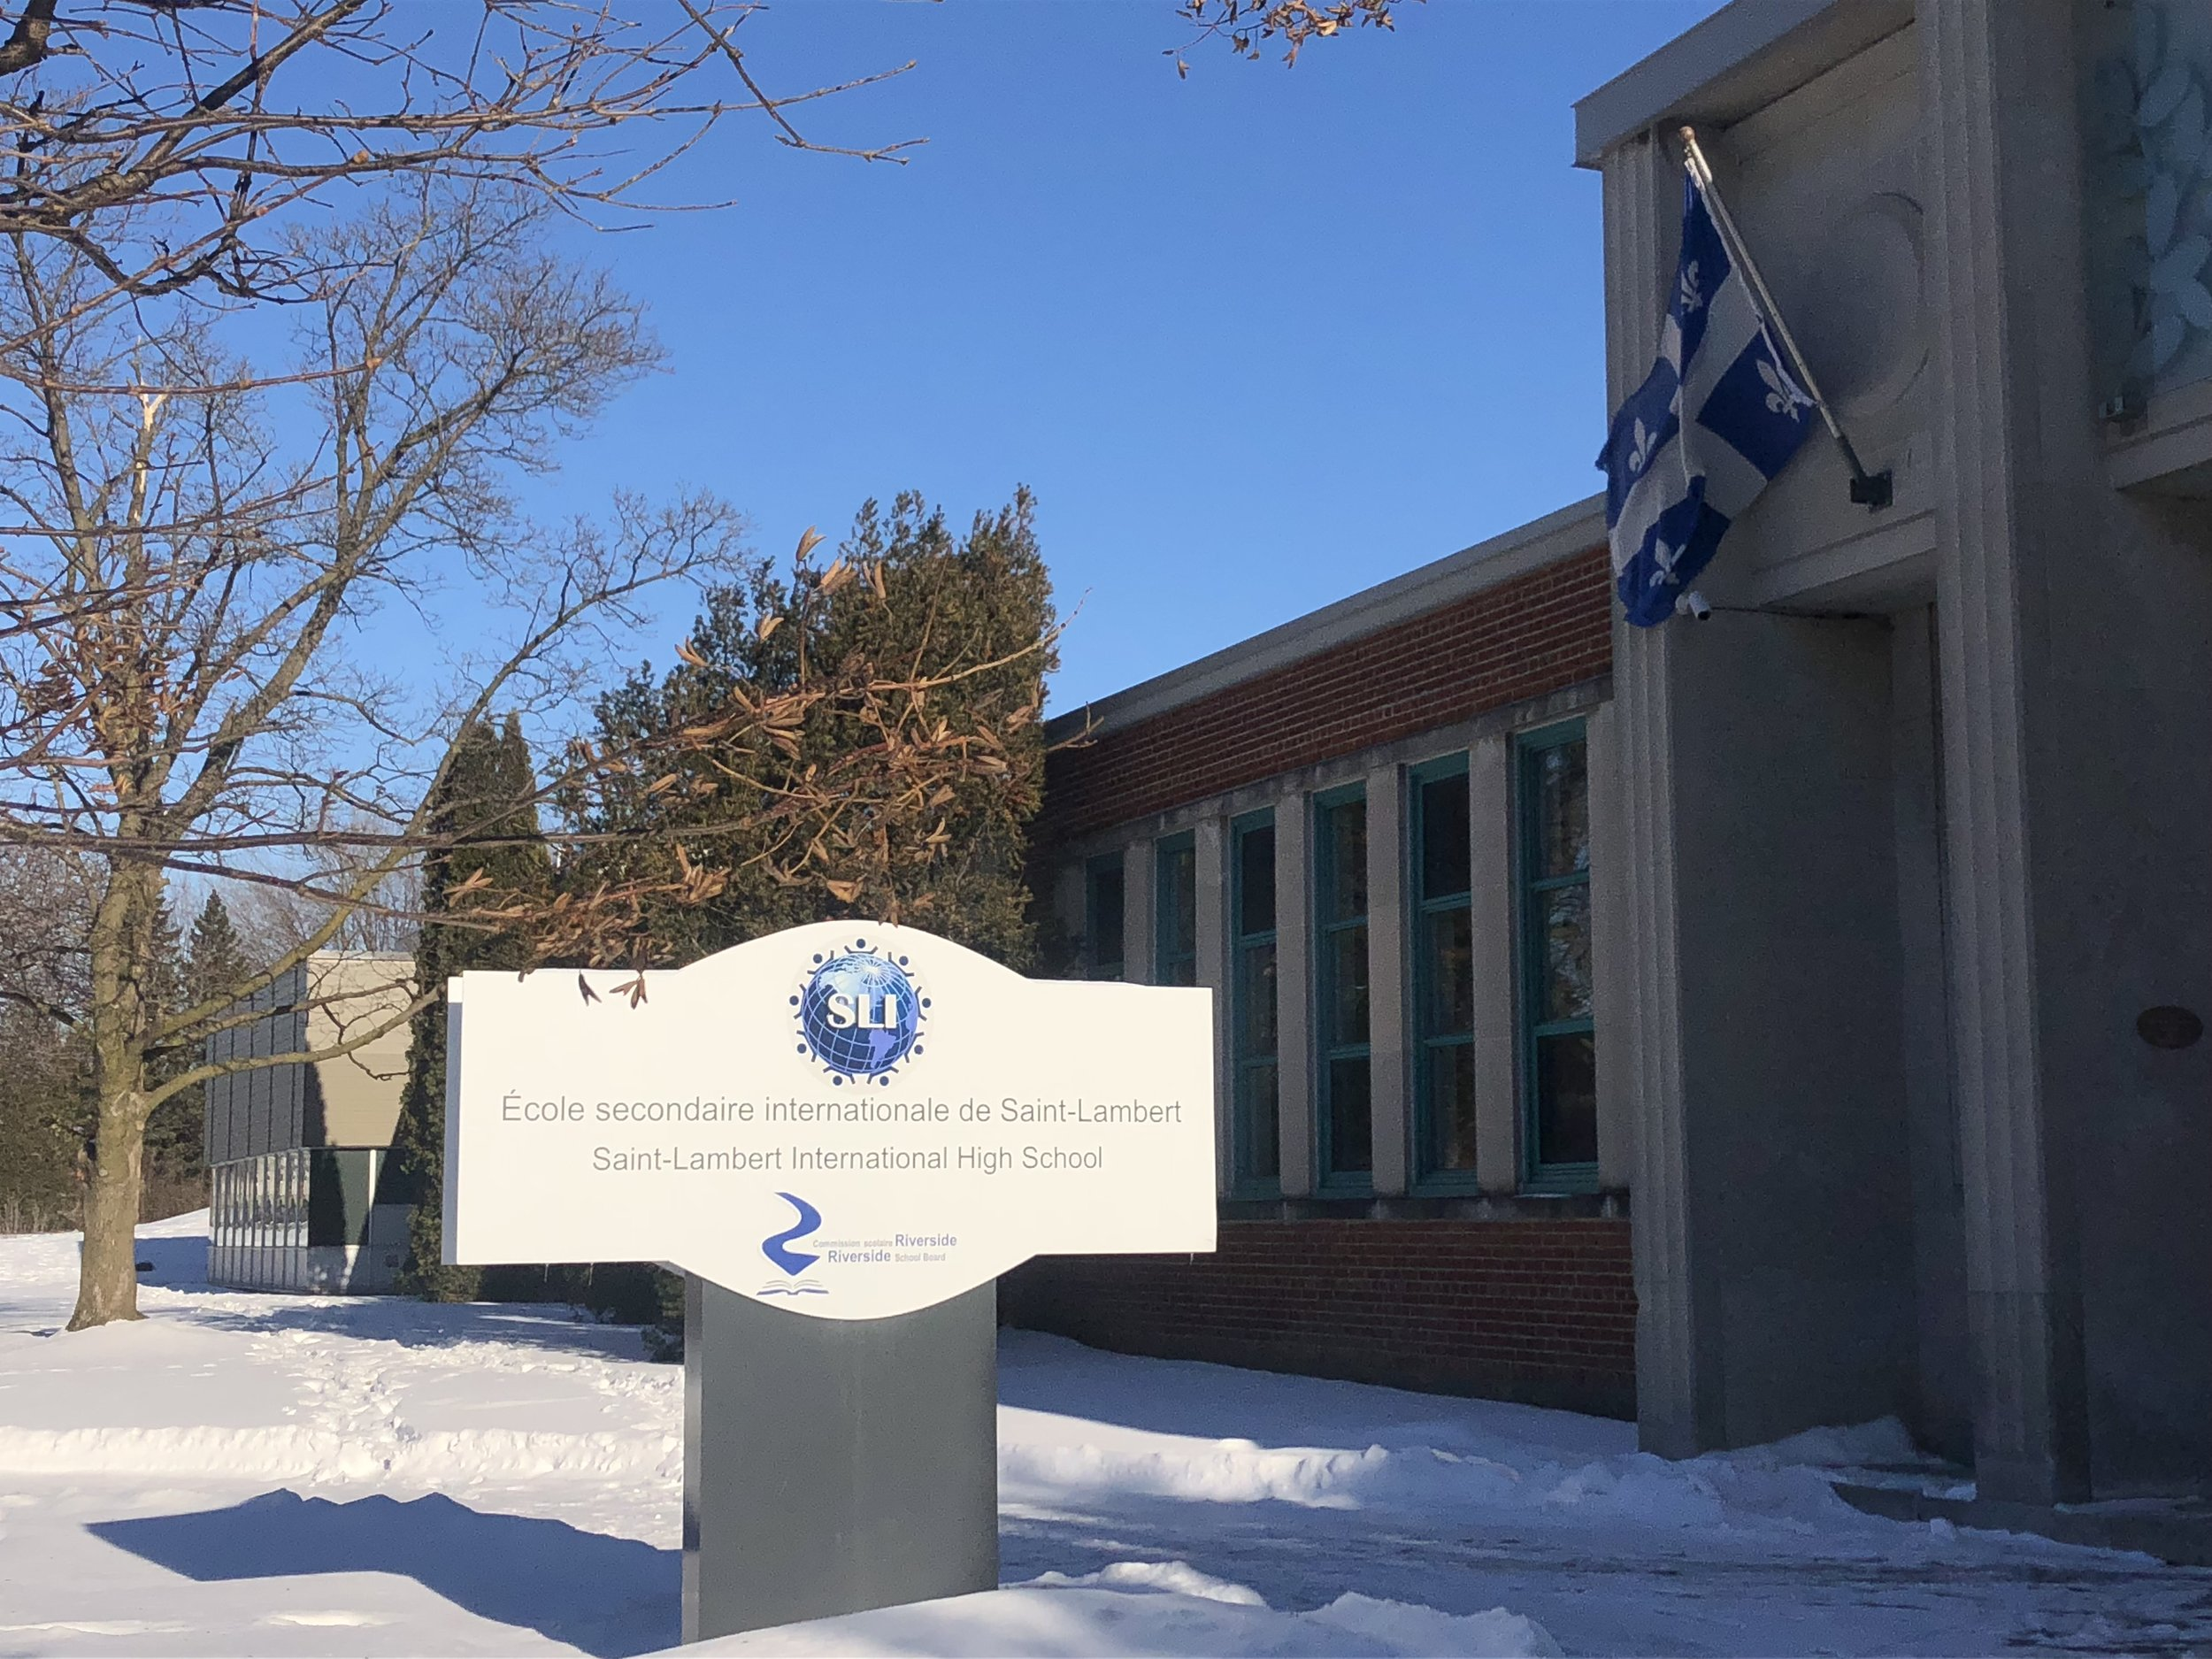 The first to partner with the RWCHR was Saint-Lambert International High School « École secondaire internationale de Saint-Lambert » (SLI) in Québec, Canada.